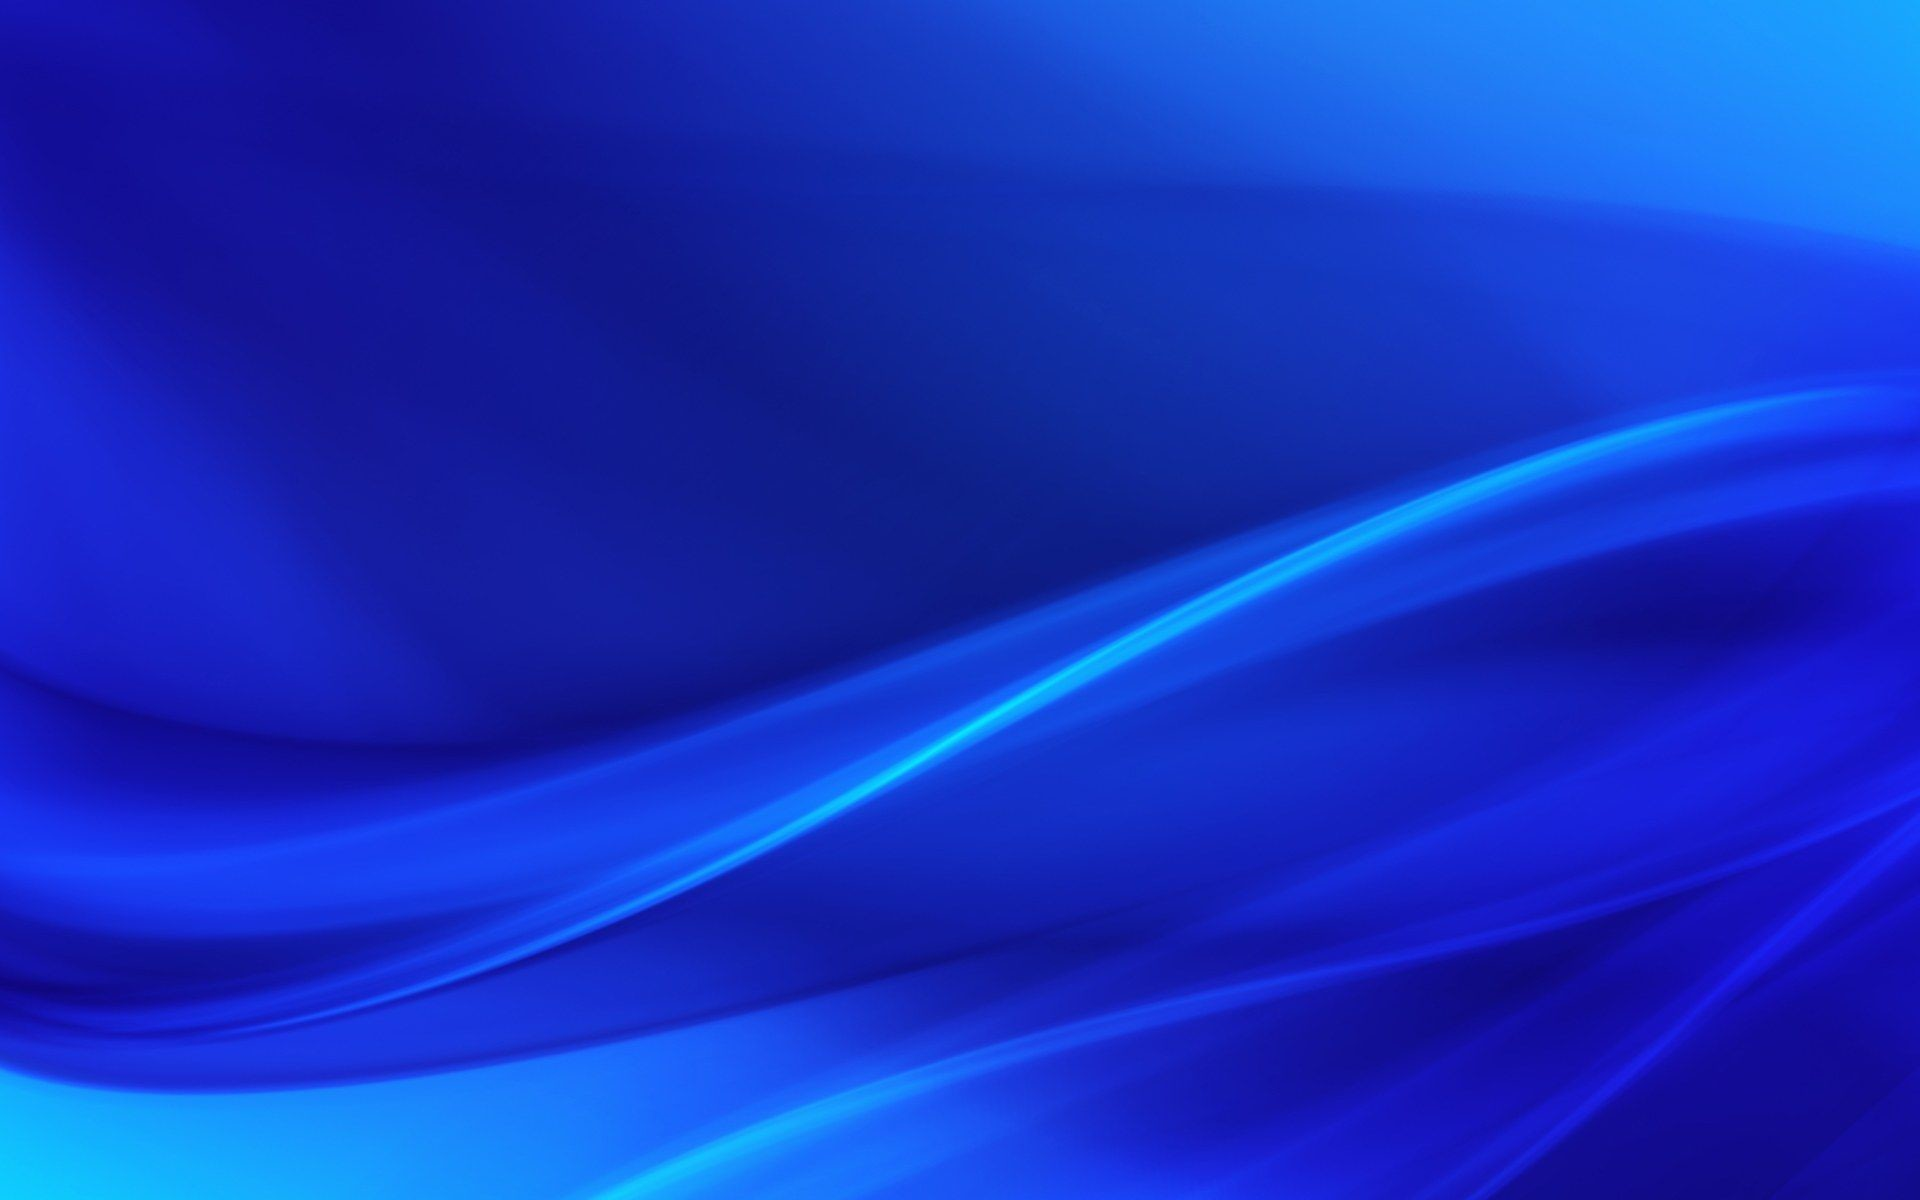 1920x1200 Light Blue Wallpaper Backgrounds Free Download.